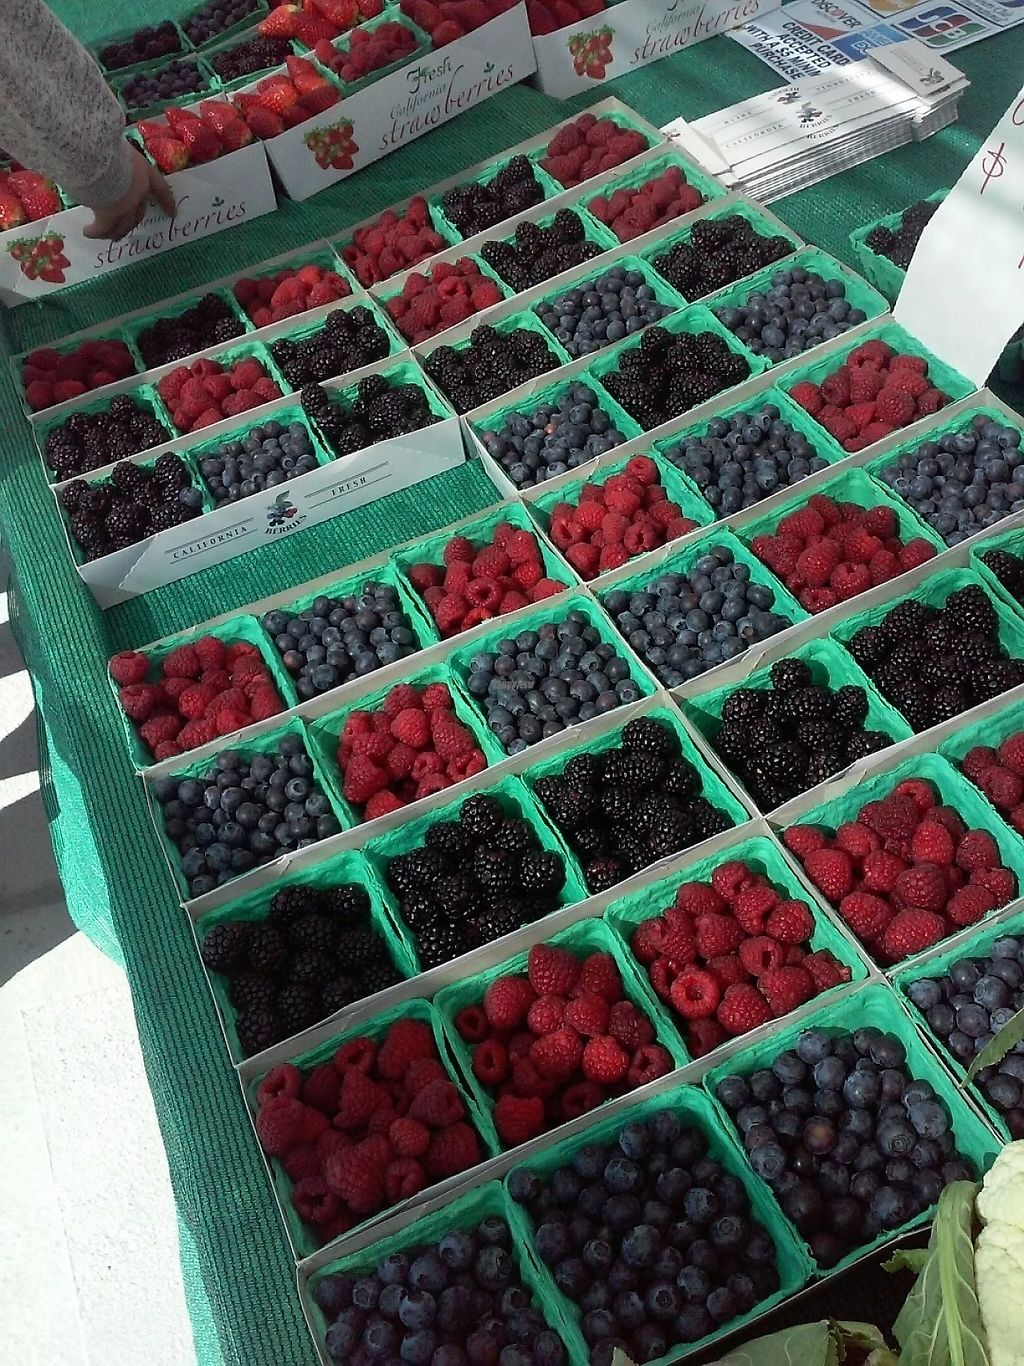 """Photo of Farmer's Market   by <a href=""""/members/profile/anastronomy"""">anastronomy</a> <br/>Fresh berries  <br/> December 30, 2016  - <a href='/contact/abuse/image/84750/206344'>Report</a>"""